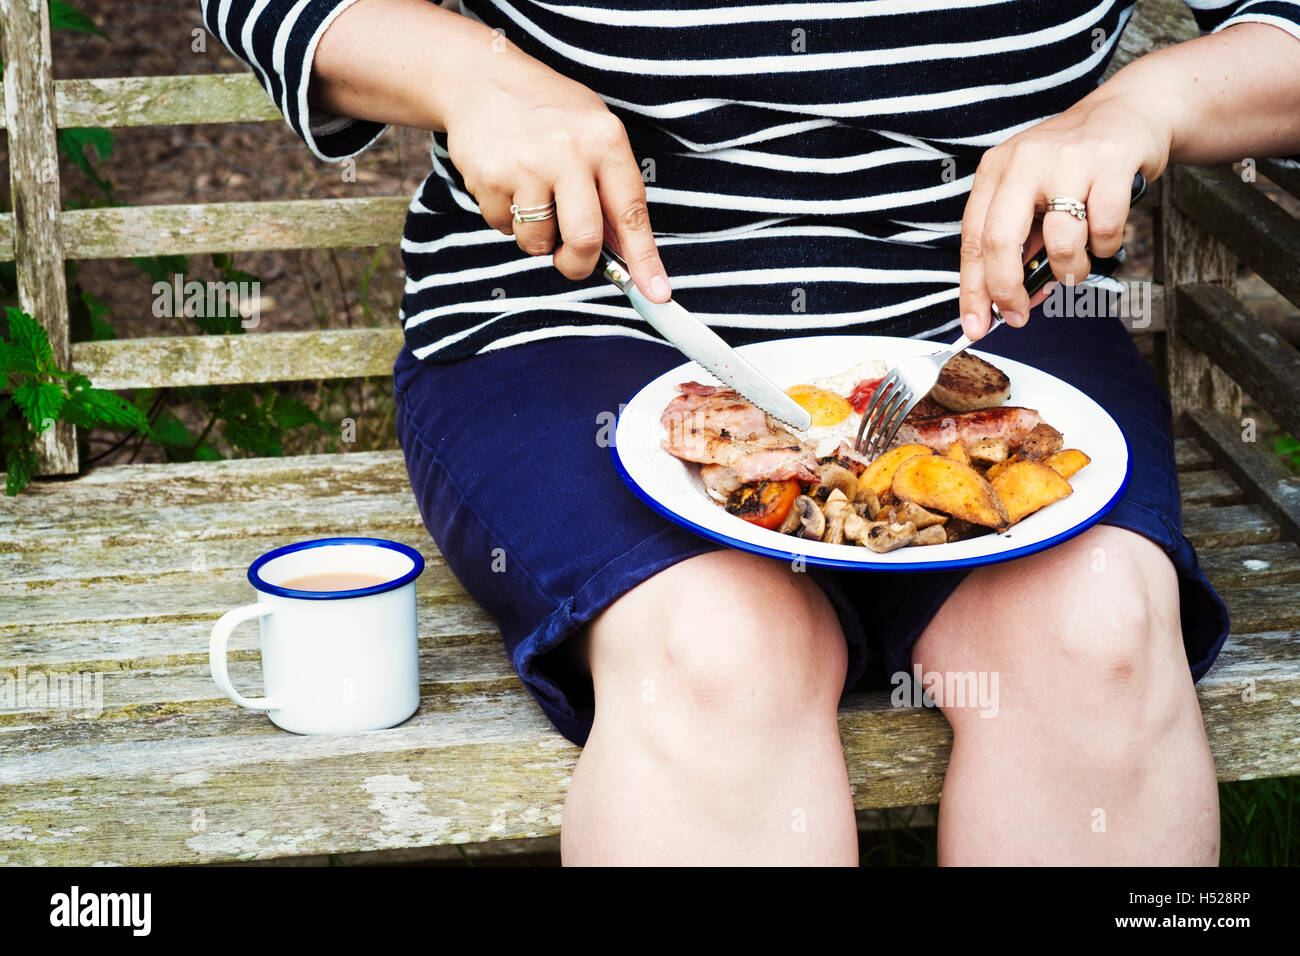 Woman sitting on a bench, eating from a plate of food balanced on her knees. - Stock Image